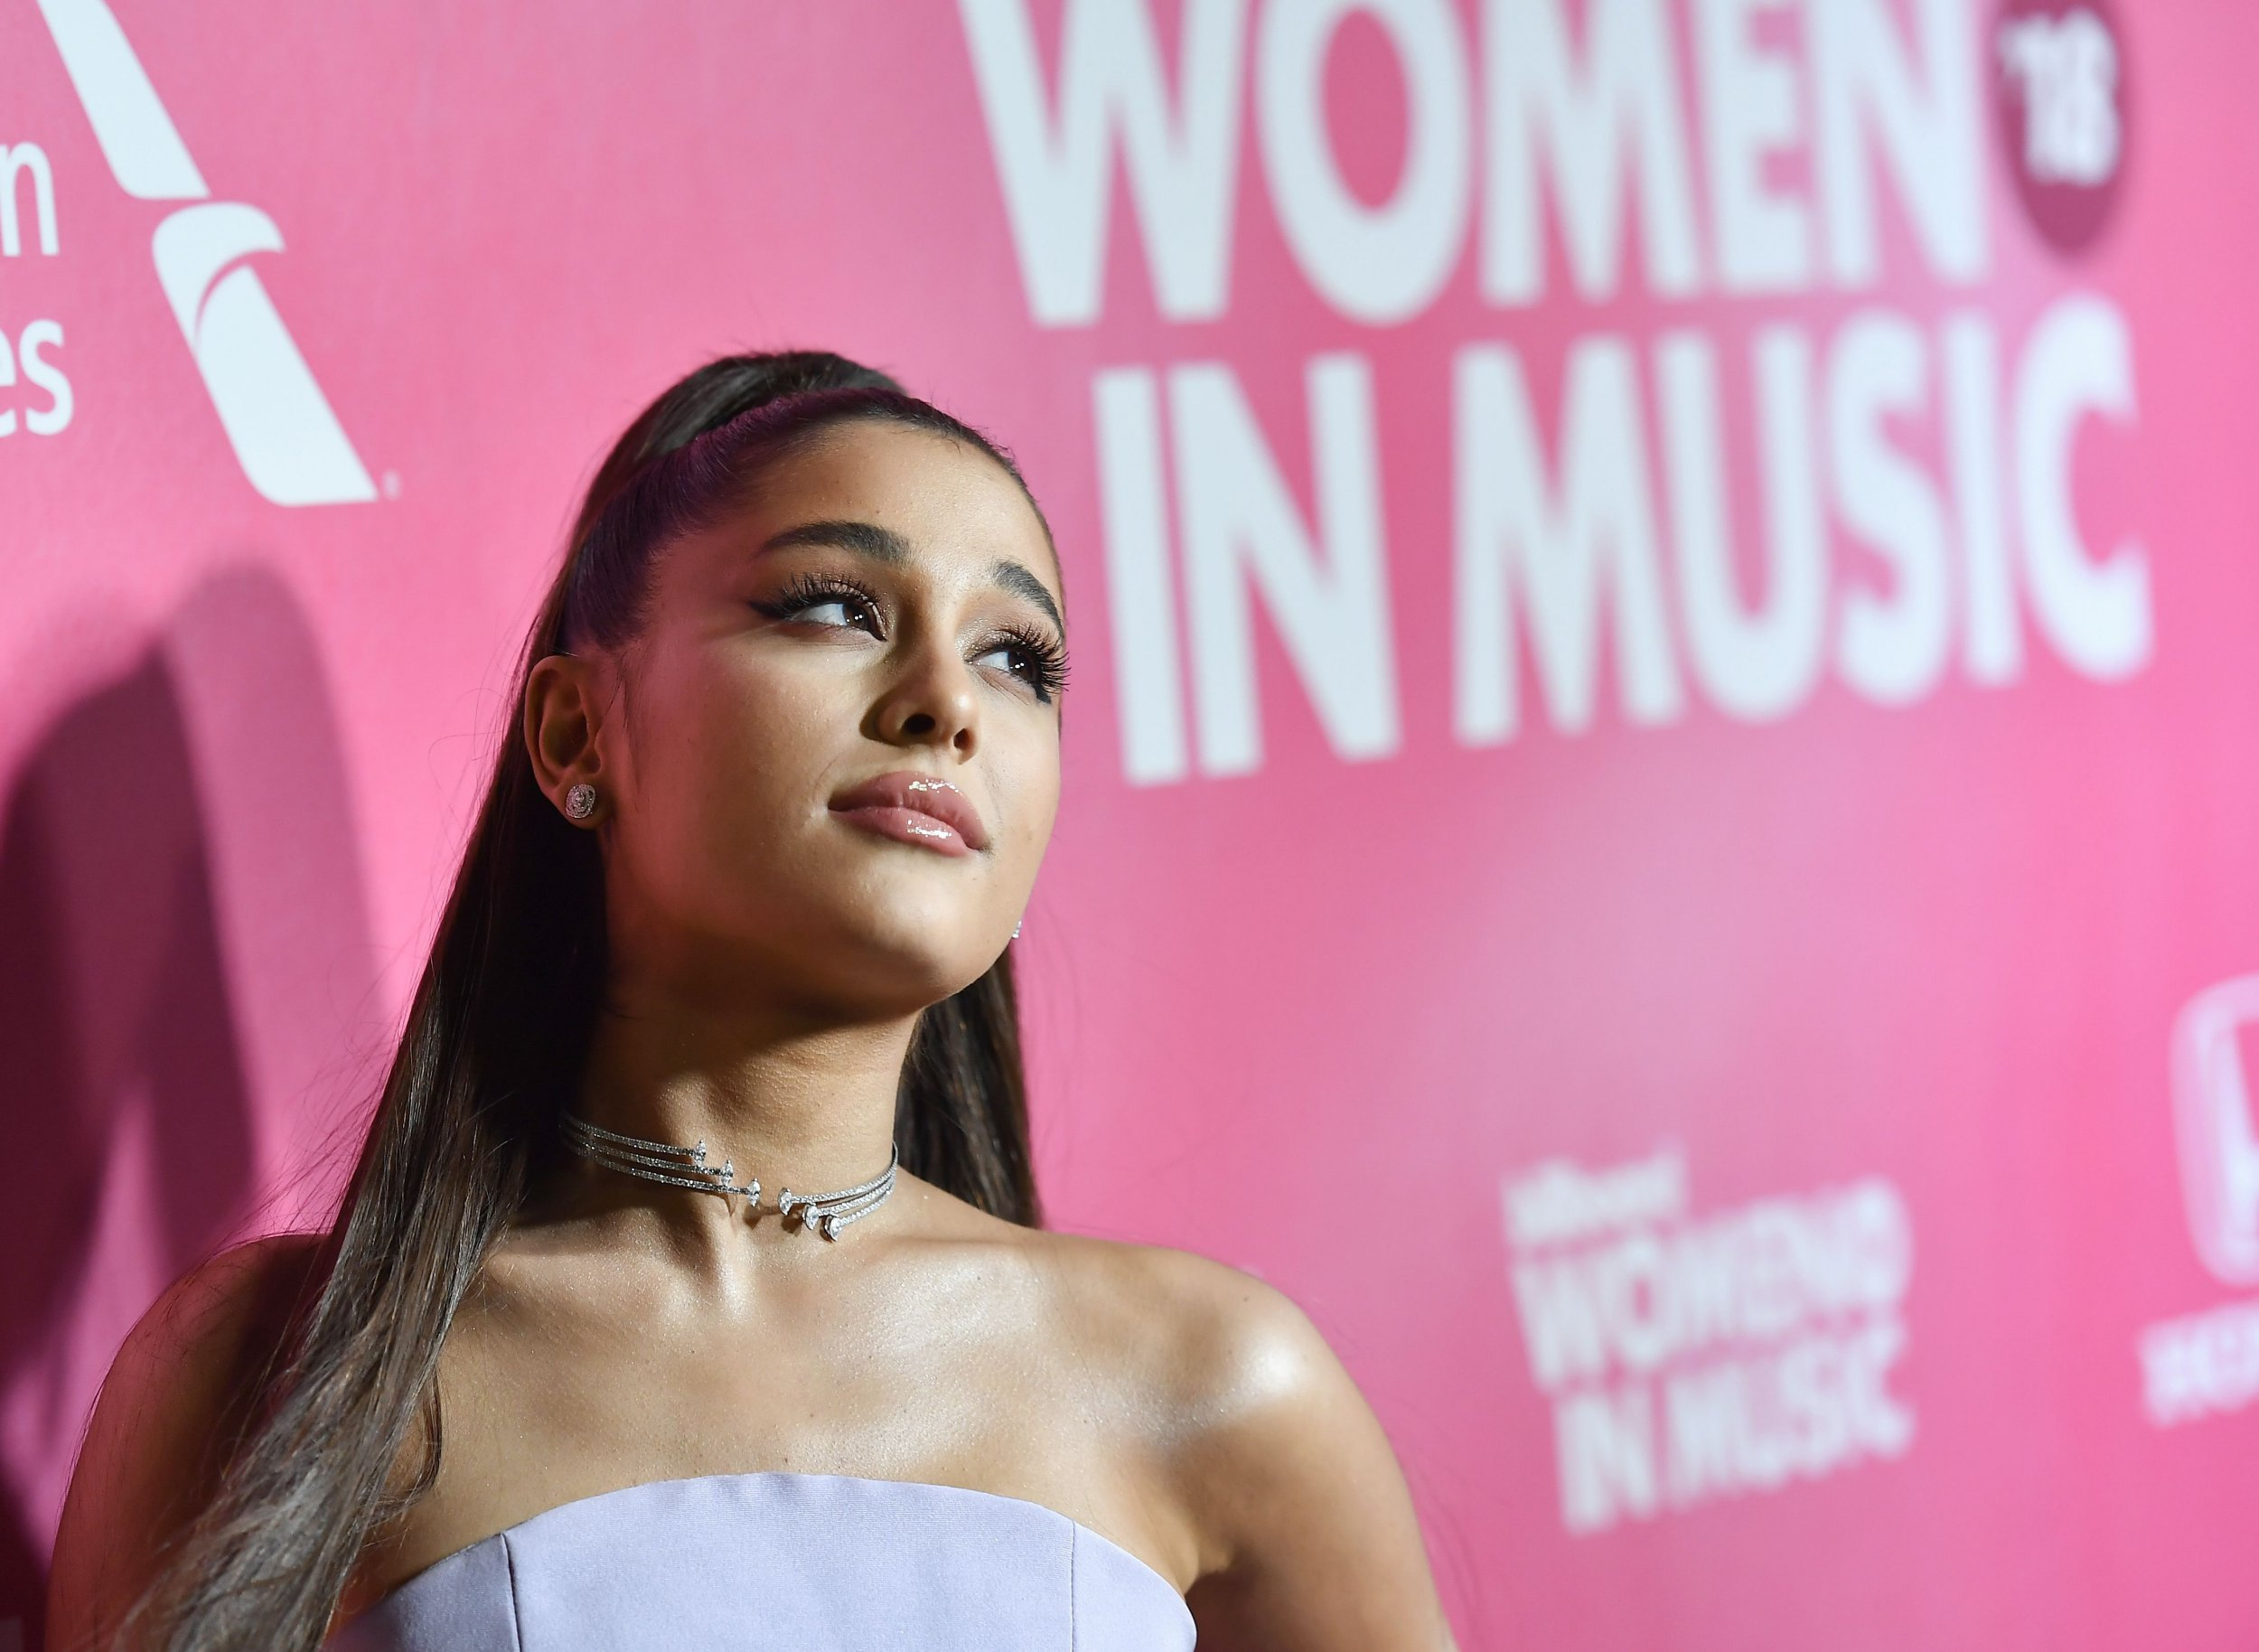 Ariana Grande jokes her personal life is 'non-existent' four months after Pete Davidson split